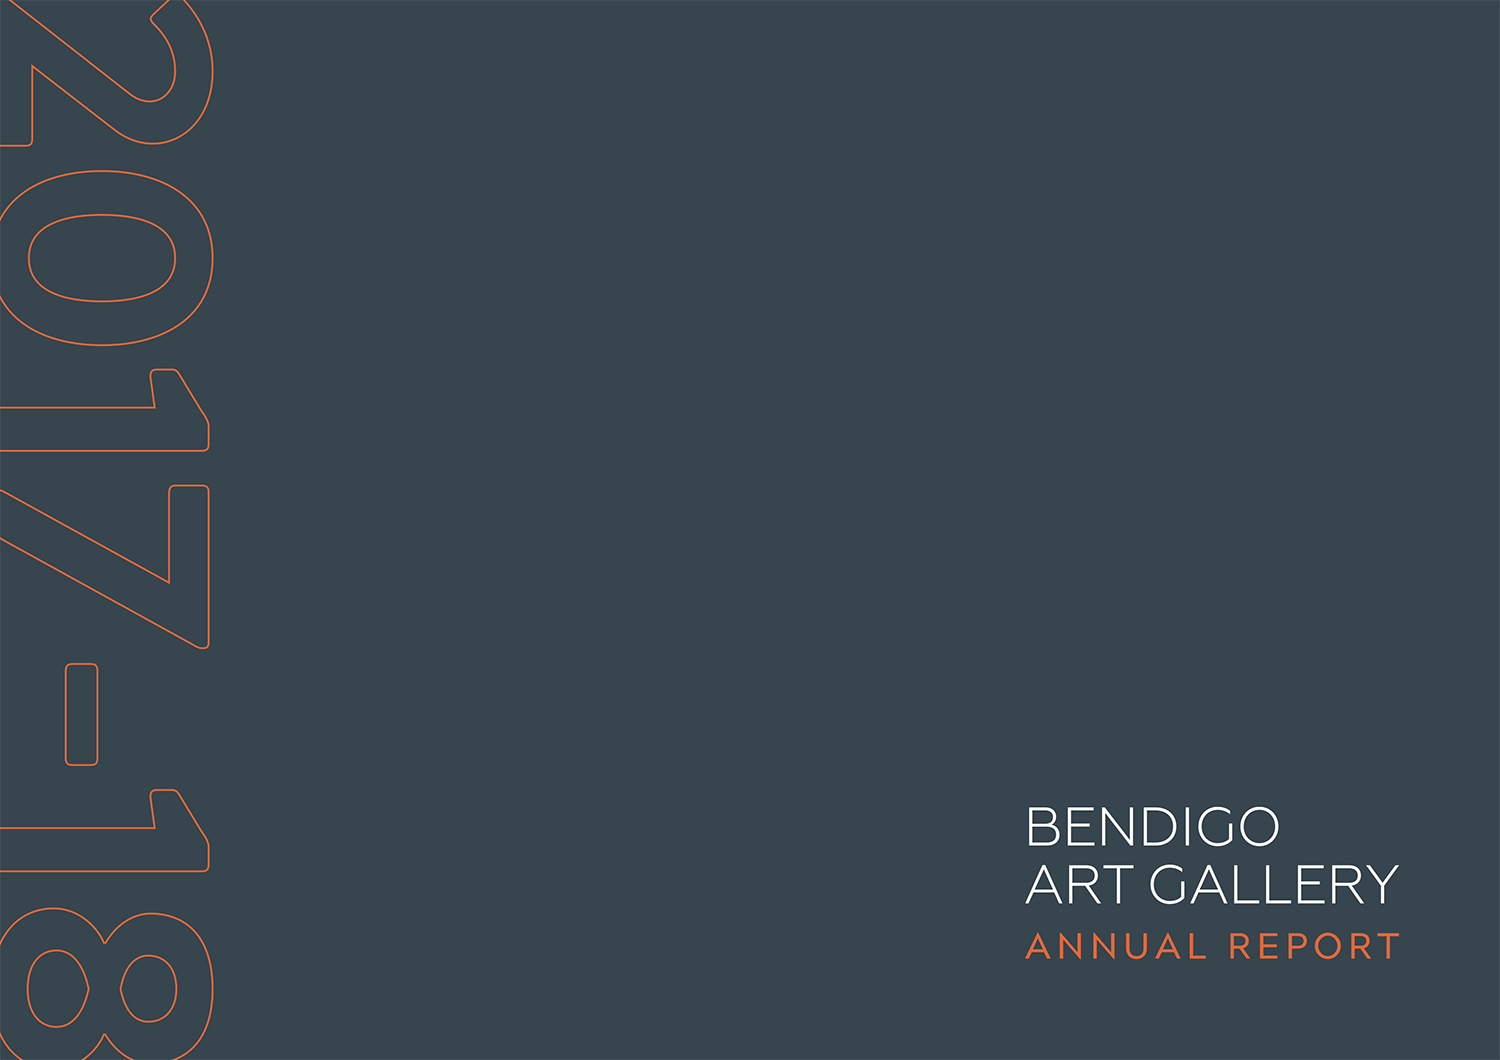 Bendigo Art Gallery Annual Report 2017-2018